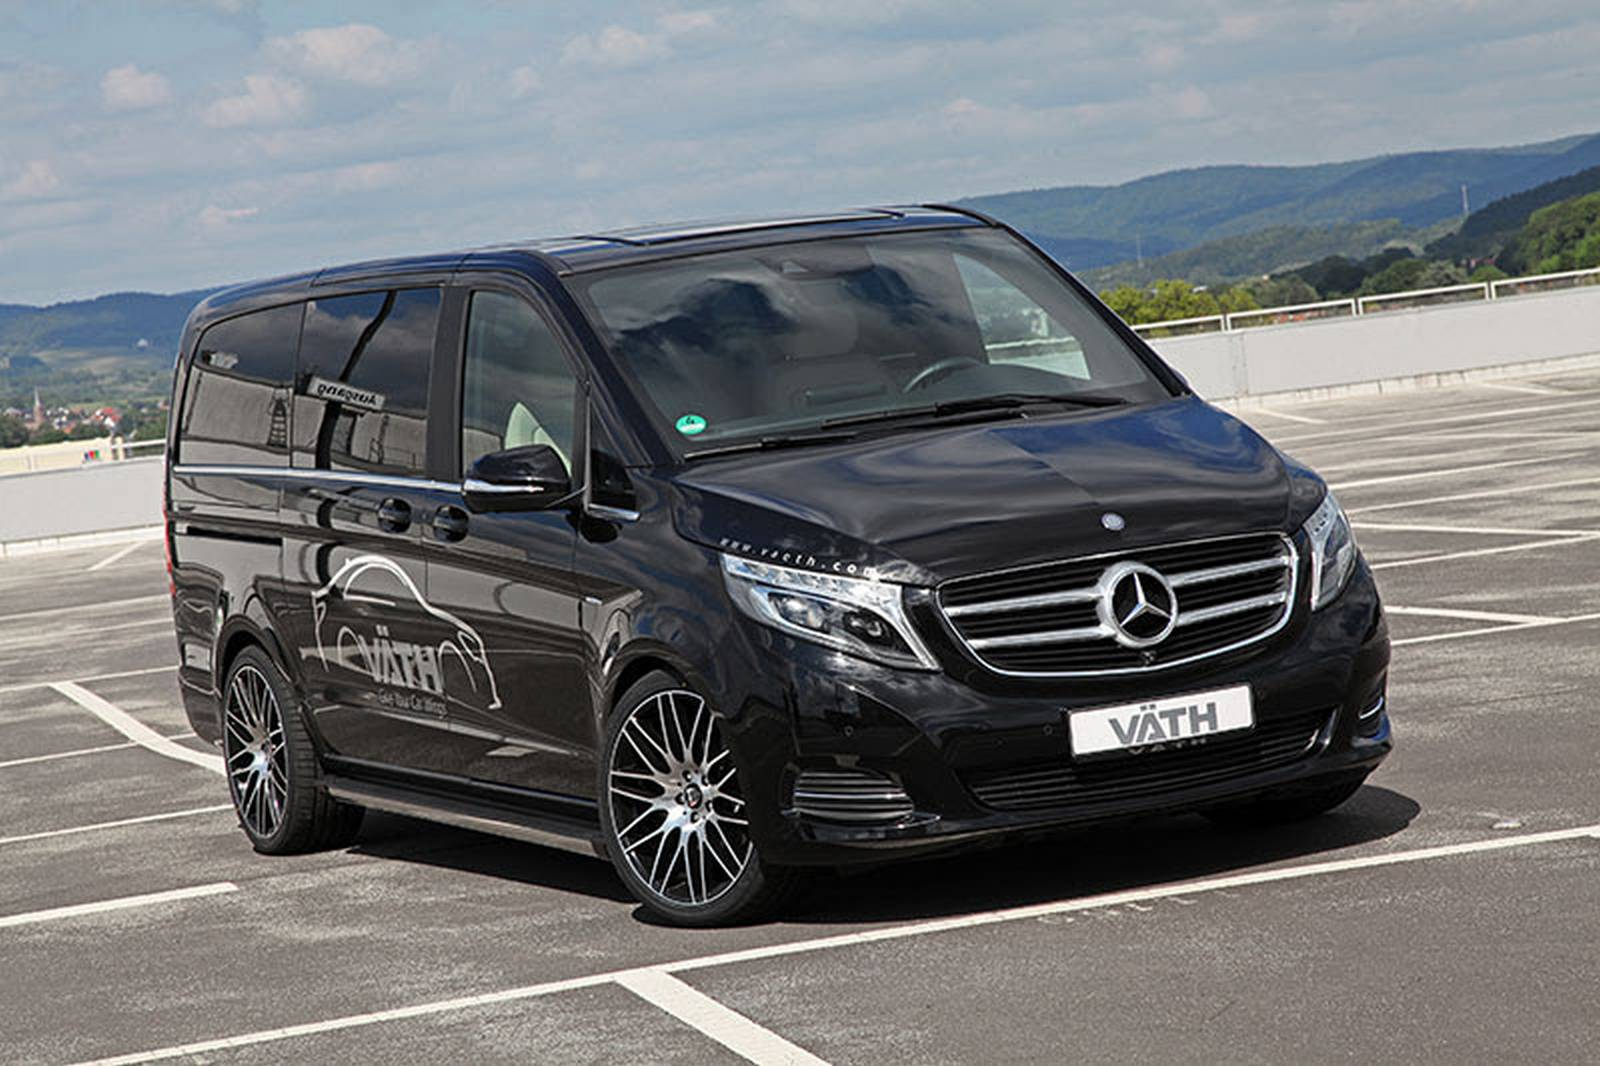 official vath mercedes benz v class gtspirit. Cars Review. Best American Auto & Cars Review